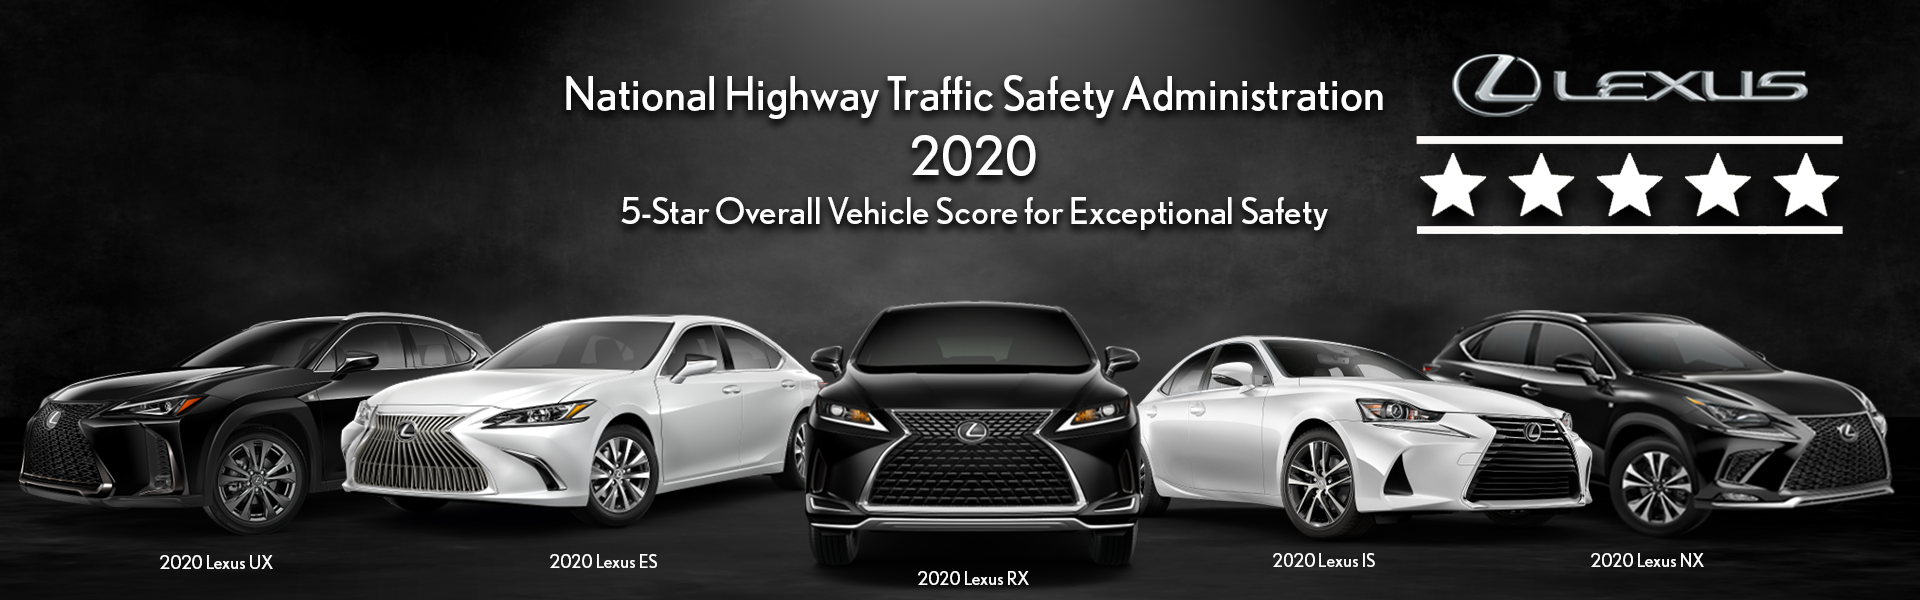 NHTSA Five Star Safety 2020